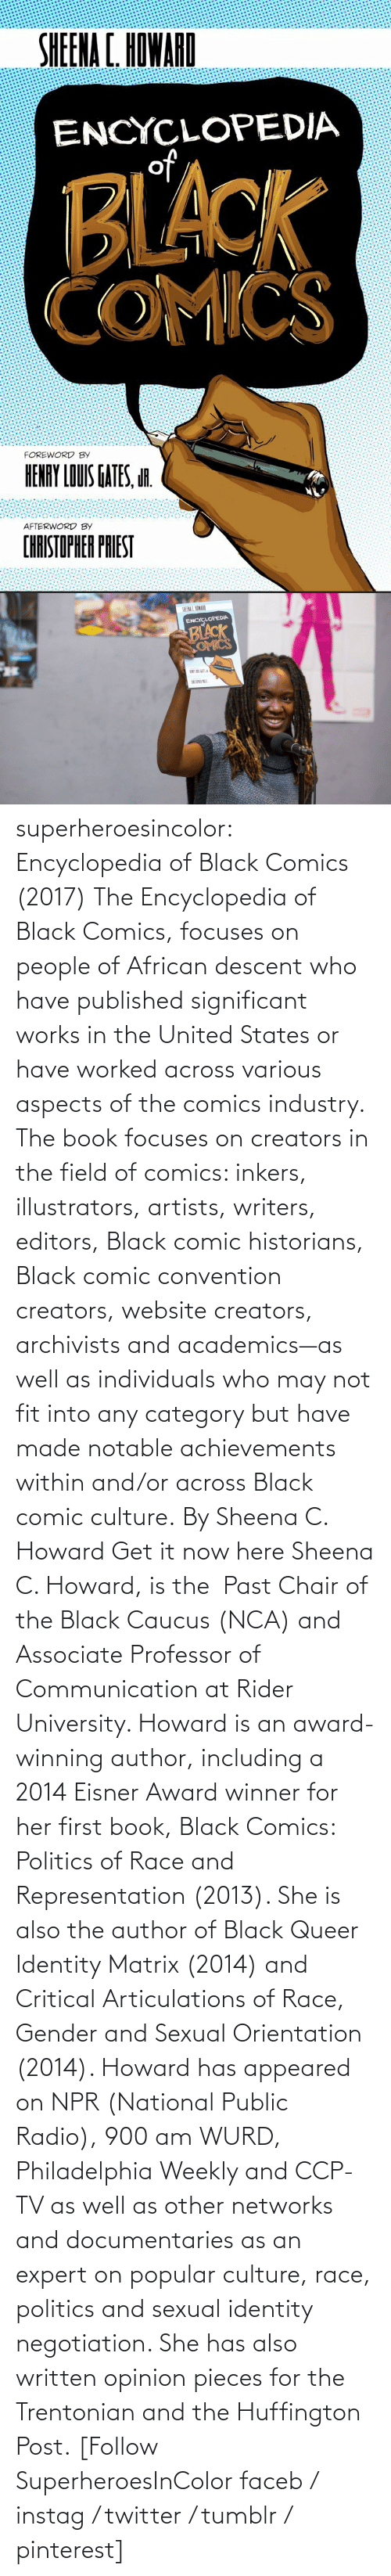 fit: superheroesincolor: Encyclopedia of Black Comics (2017) The Encyclopedia of Black Comics, focuses on people of African descent who have published significant works in the United States or have worked across various aspects of the comics industry.  The book focuses on creators in the field of comics: inkers, illustrators, artists, writers, editors, Black comic historians, Black comic convention creators, website creators, archivists and academics—as well as individuals who may not fit into any category but have made notable achievements within and/or across Black comic culture. By Sheena C. Howard Get it now here  Sheena C. Howard, is the  Past Chair of the Black Caucus (NCA) and Associate Professor of Communication at Rider University. Howard is an award-winning author, including a 2014 Eisner Award winner for her first book, Black Comics: Politics of Race and Representation (2013). She is also the author of Black Queer Identity Matrix (2014) and Critical Articulations of Race, Gender and Sexual Orientation (2014). Howard has appeared on NPR (National Public Radio), 900 am WURD, Philadelphia Weekly and CCP-TV as well as other networks and documentaries as an expert on popular culture, race, politics and sexual identity negotiation. She has also written opinion pieces for the Trentonian and the Huffington Post.   [Follow SuperheroesInColor faceb / instag / twitter / tumblr / pinterest]